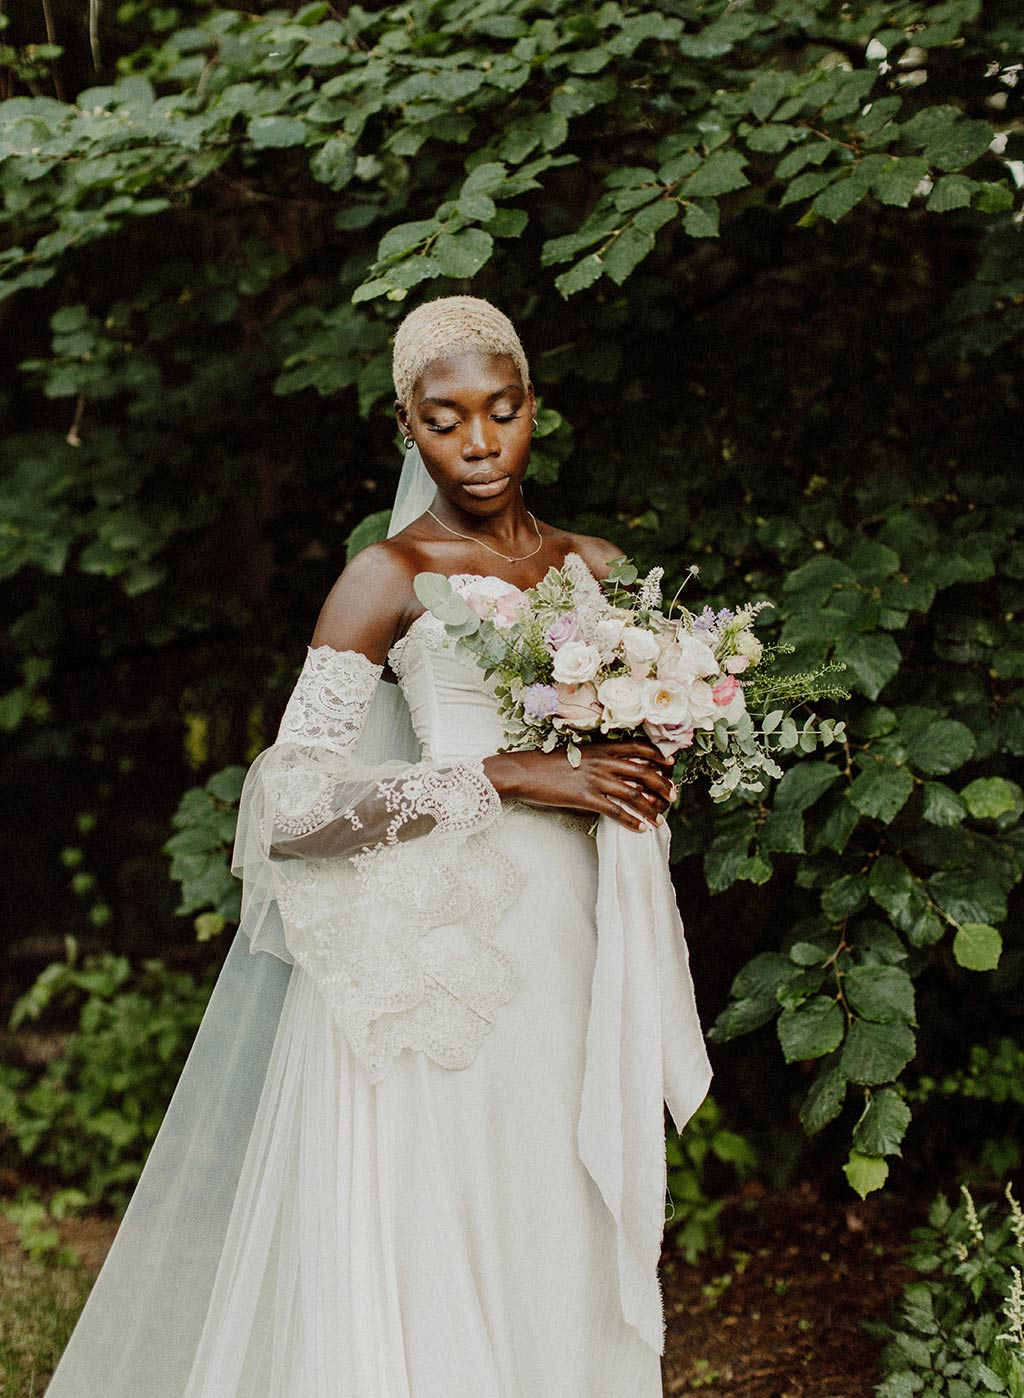 Bride Model with Flower Bouquet